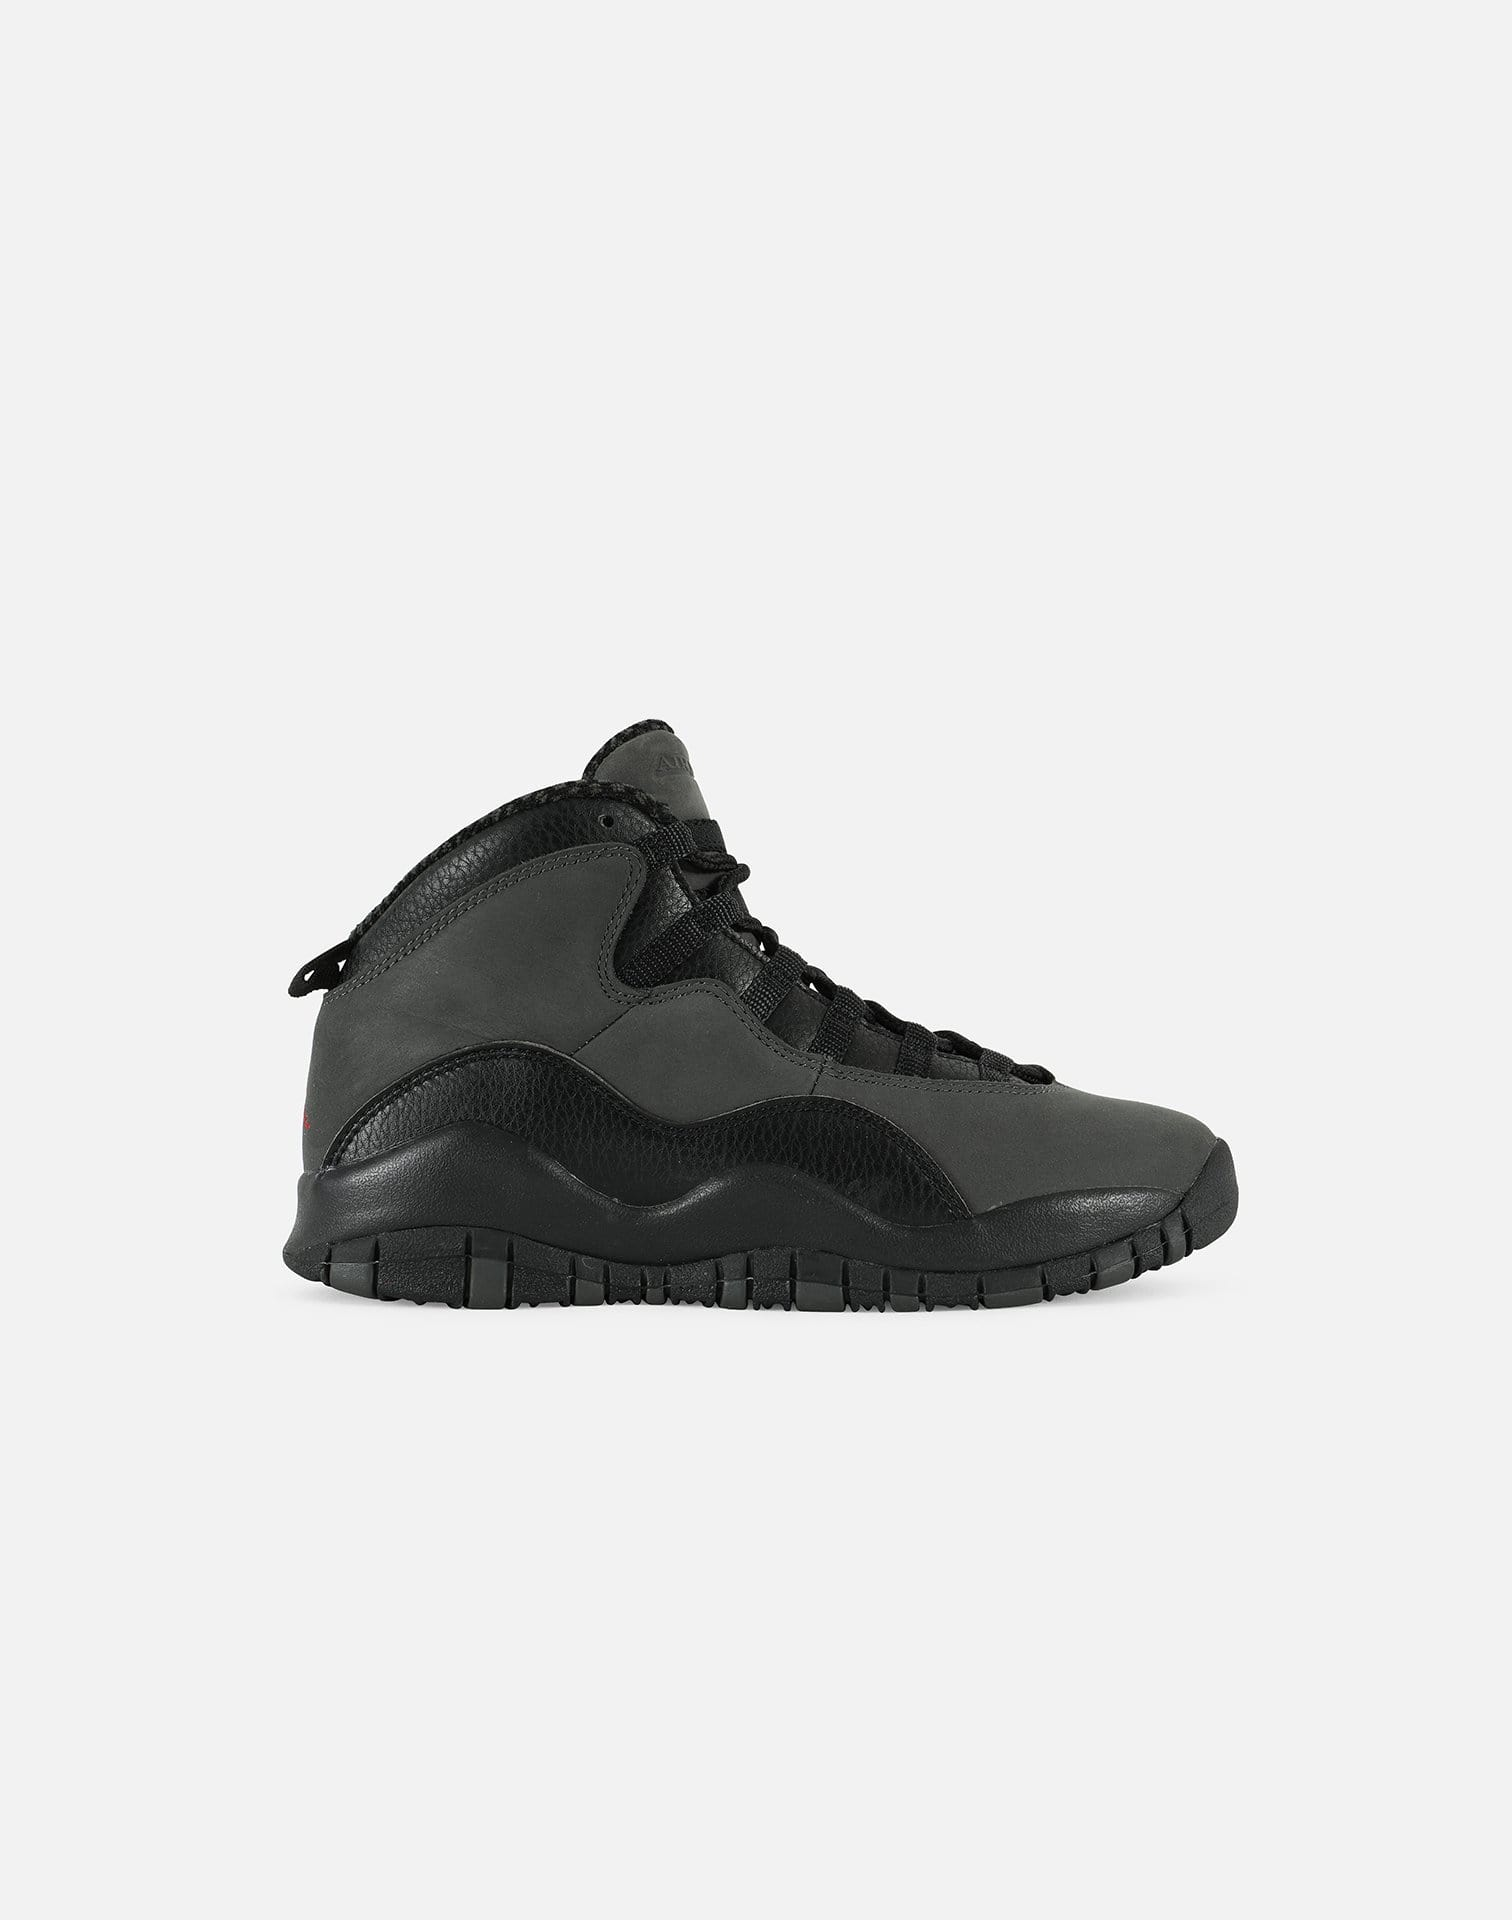 Jordan Air Jordan Retro 10 'Shadow' Grade-School